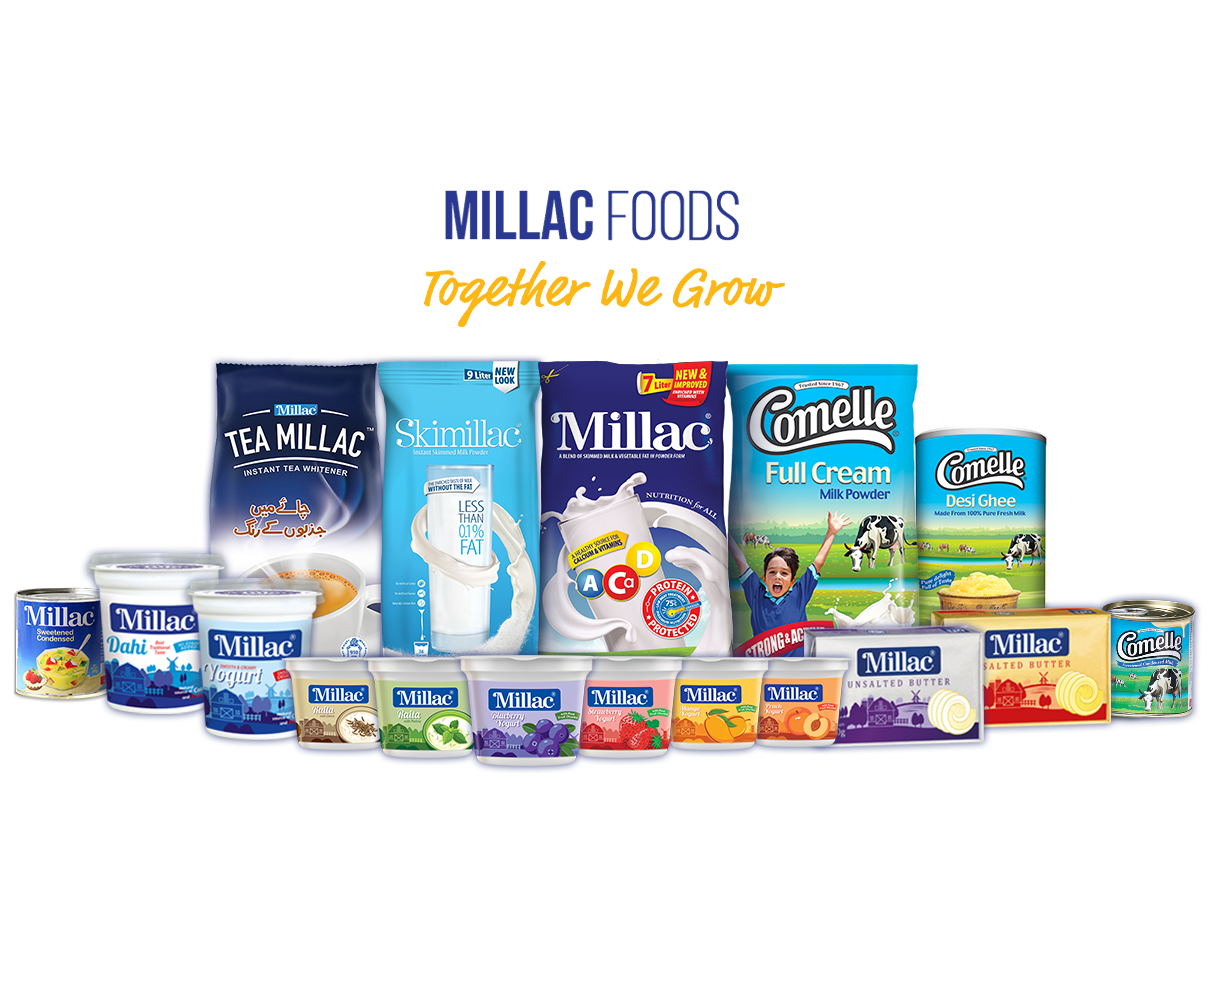 Millac--WEbsite--all-comelle